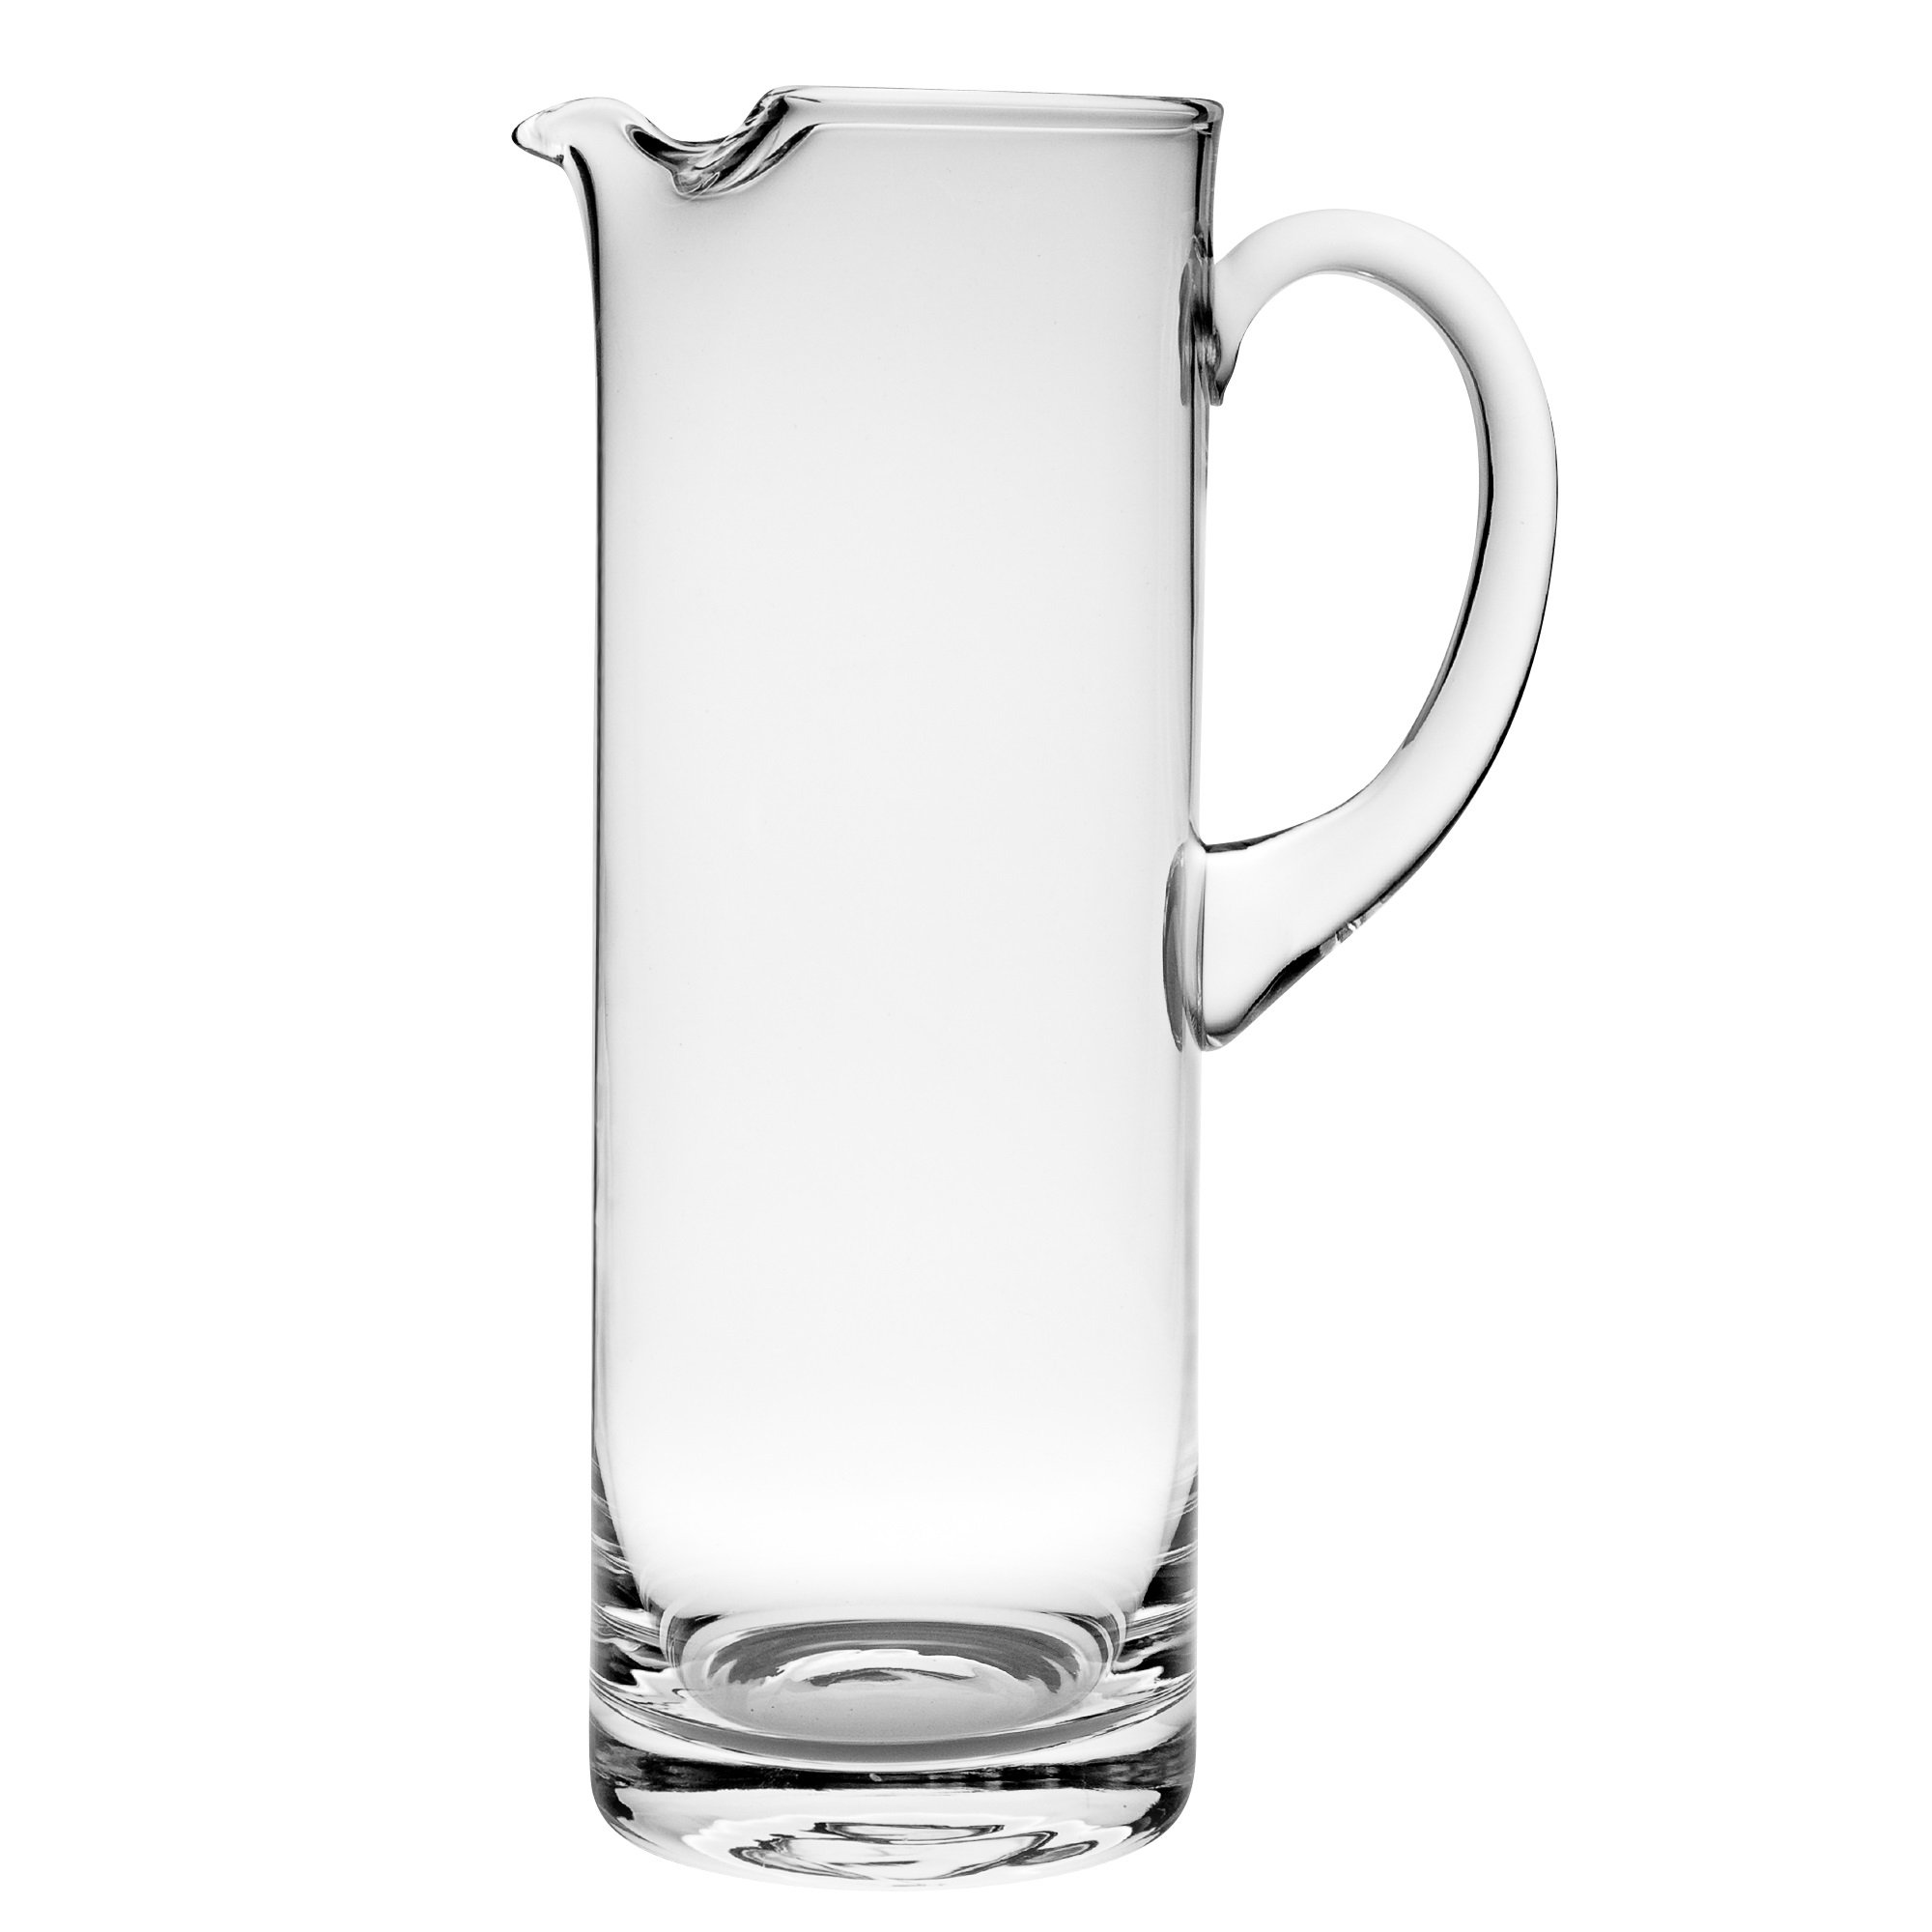 Barski Handmade Straight Sided Glass Pitcher with handle , With Spout, Ice Lip, 54 oz. 11'' H, Made in Europe